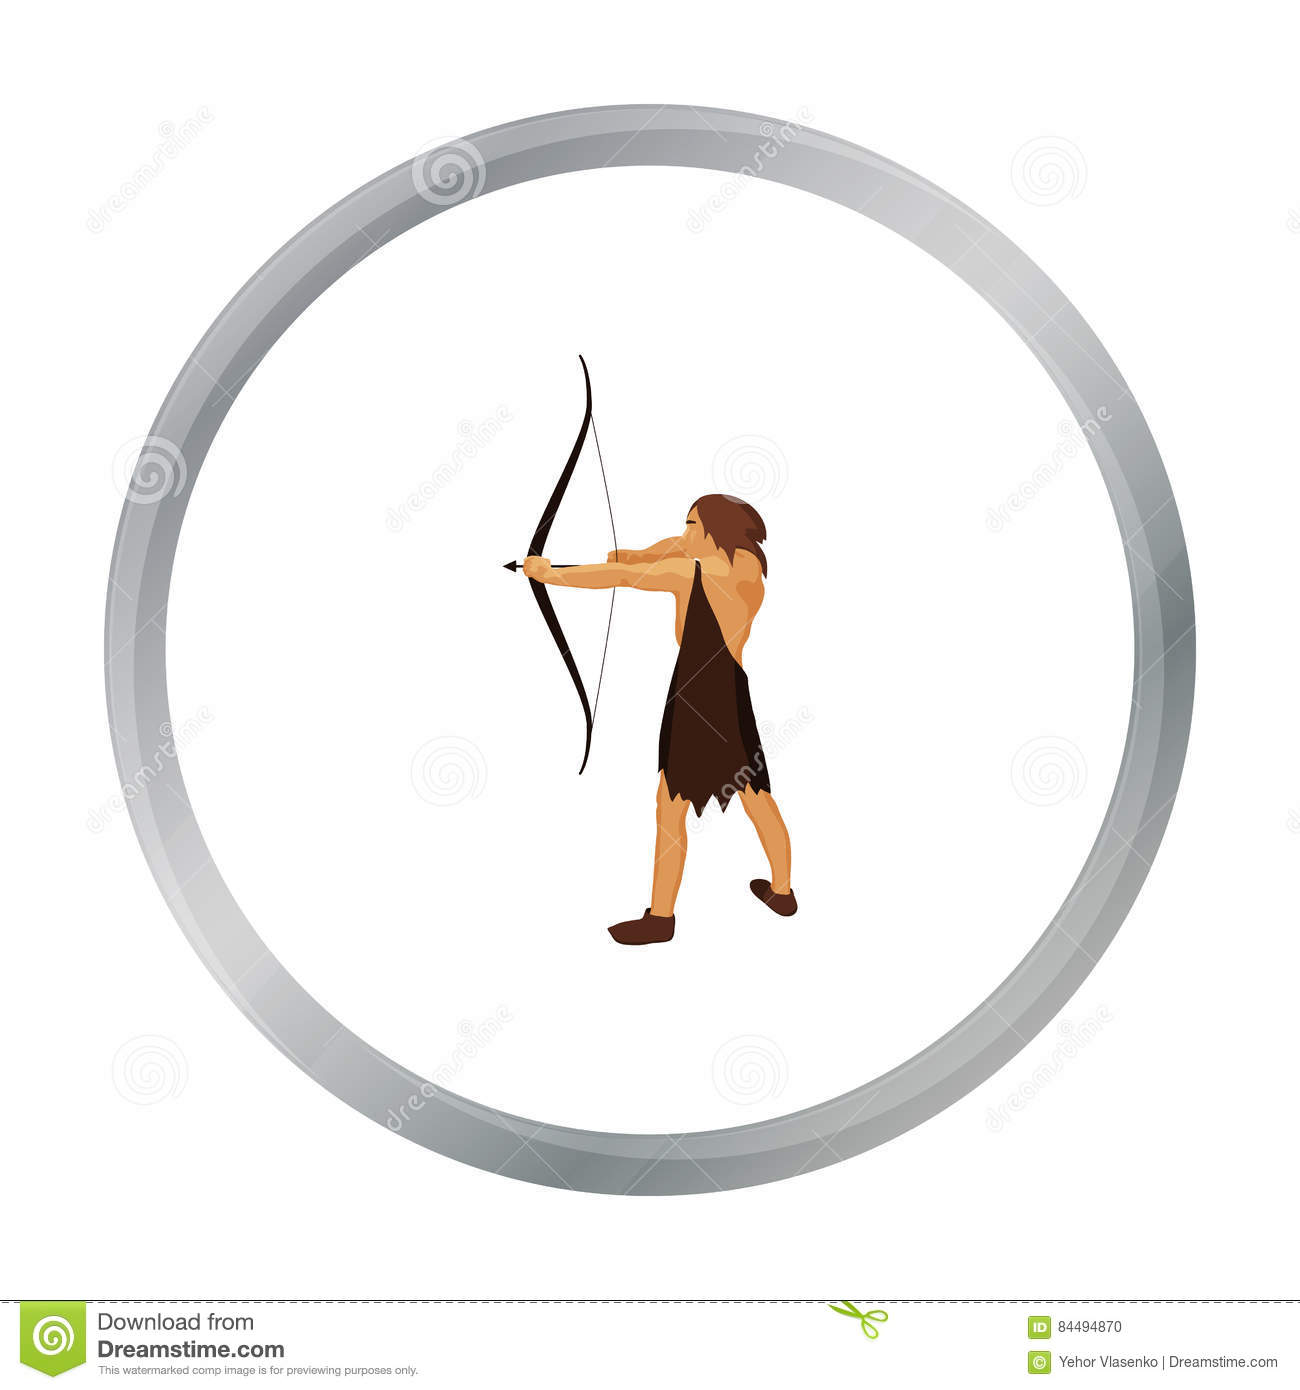 Caveman With Bow And Arrow Icon In Cartoon Style Isolated On White.